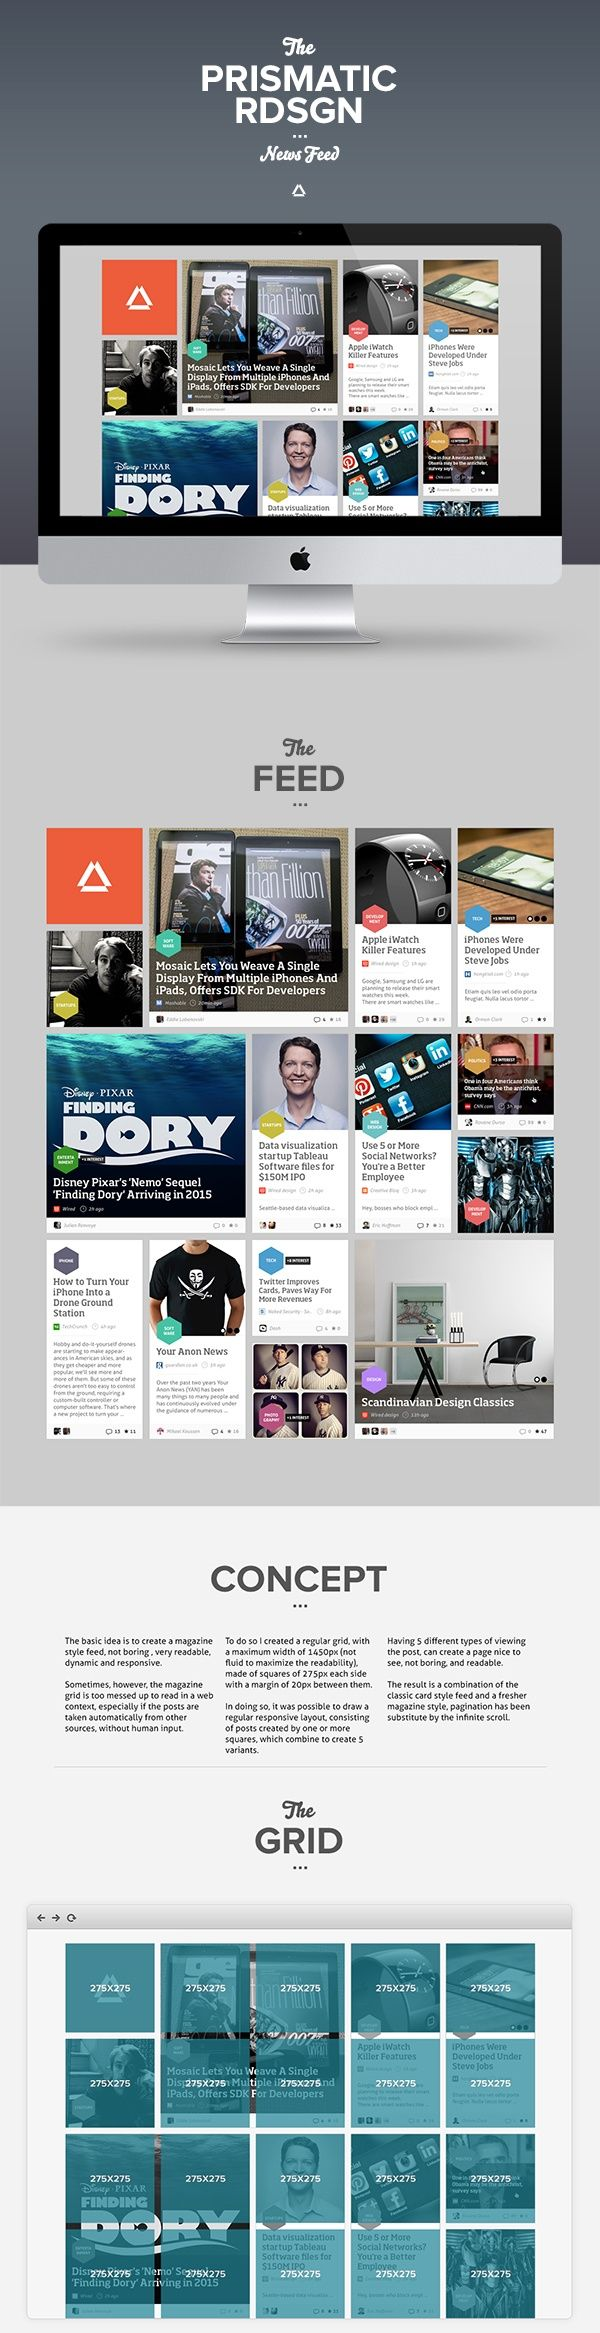 Prismatic NewsFeed Concept Redesign by Enzo Li Volti #interactive #website #webdesign #grid